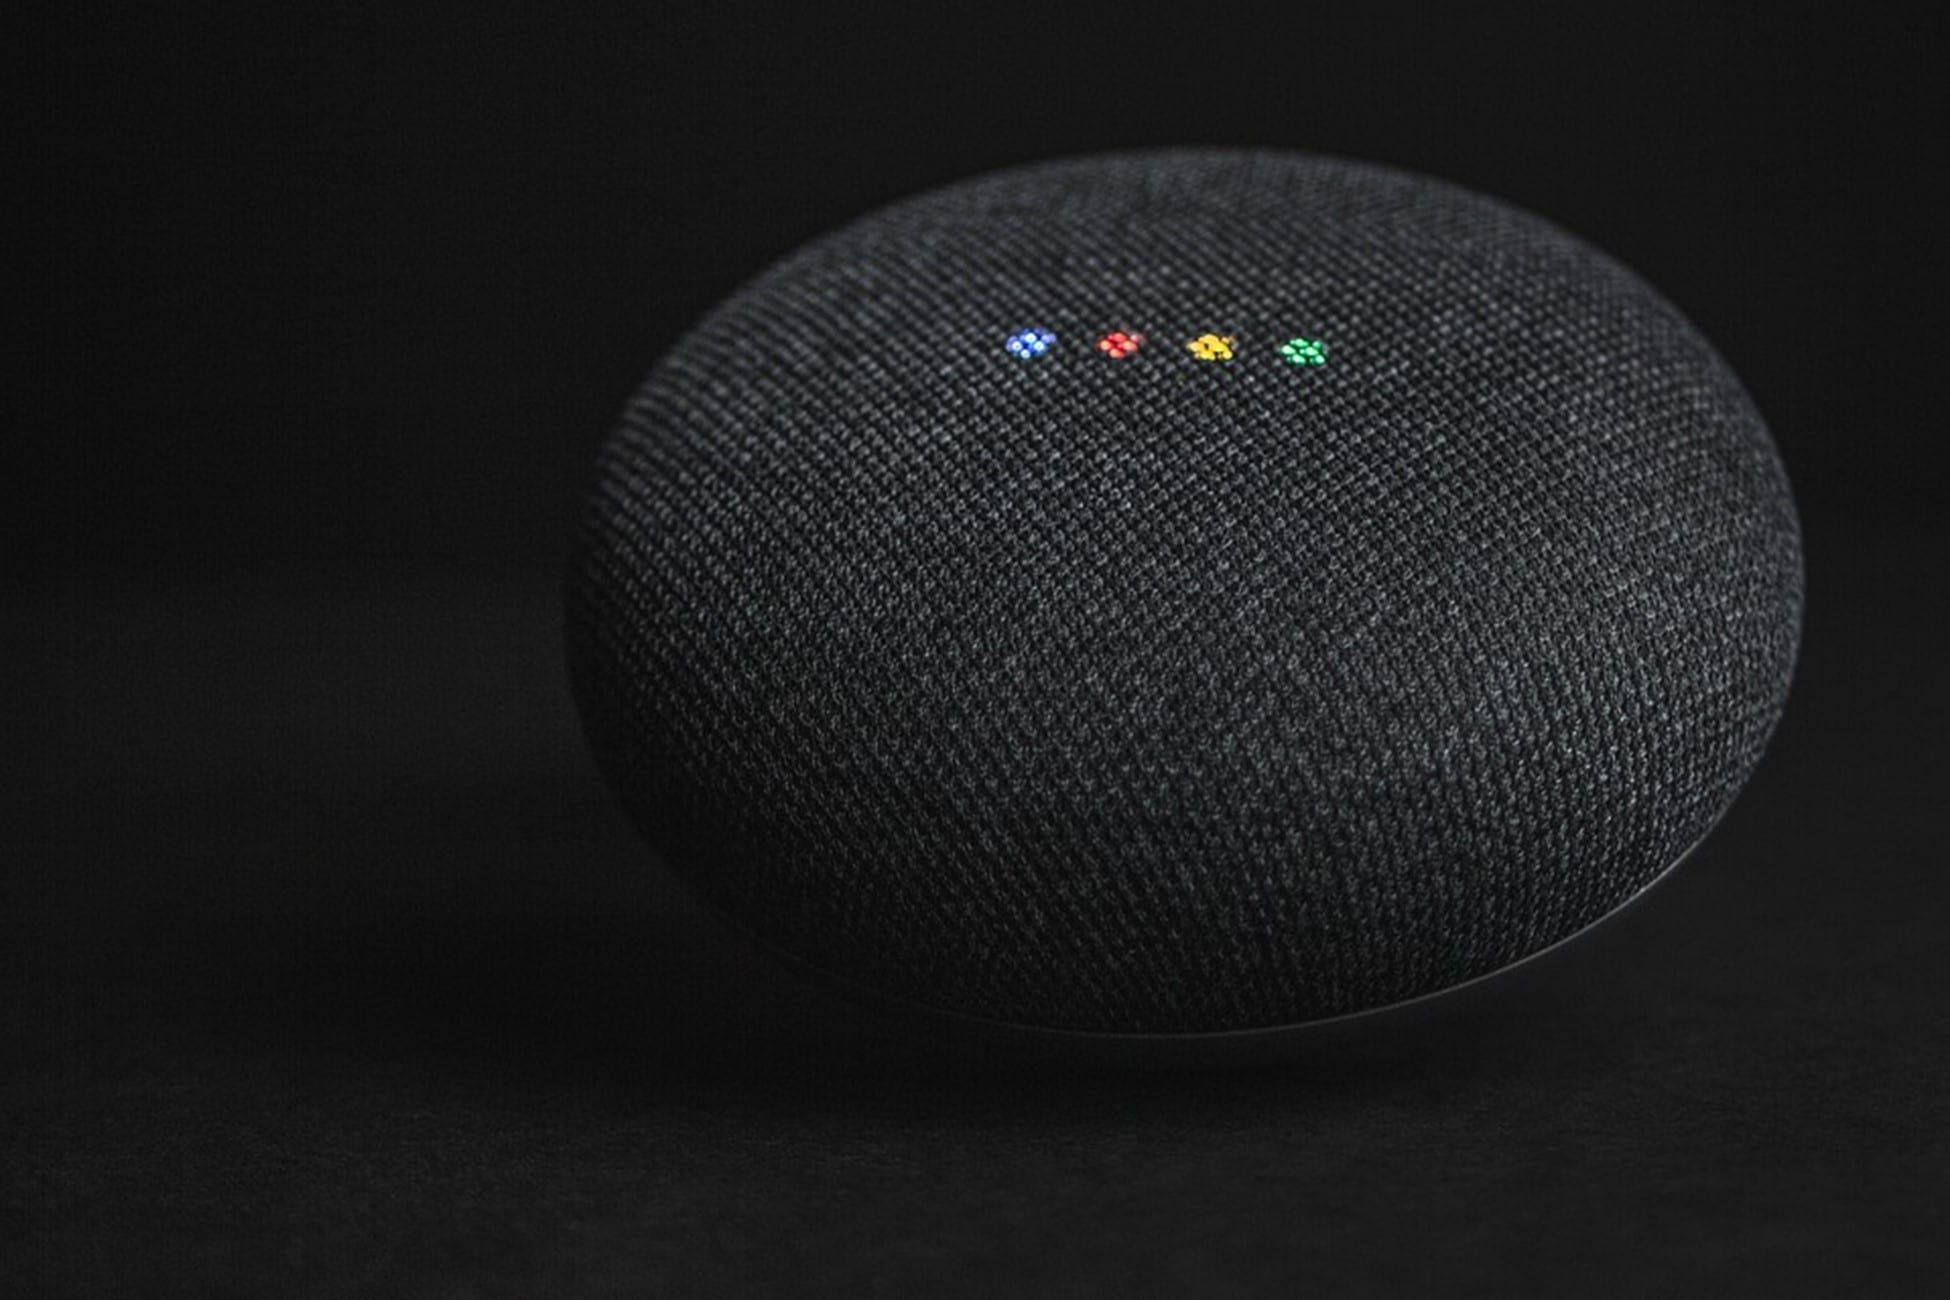 Online marketing will feature more optimisation for voice search in the future